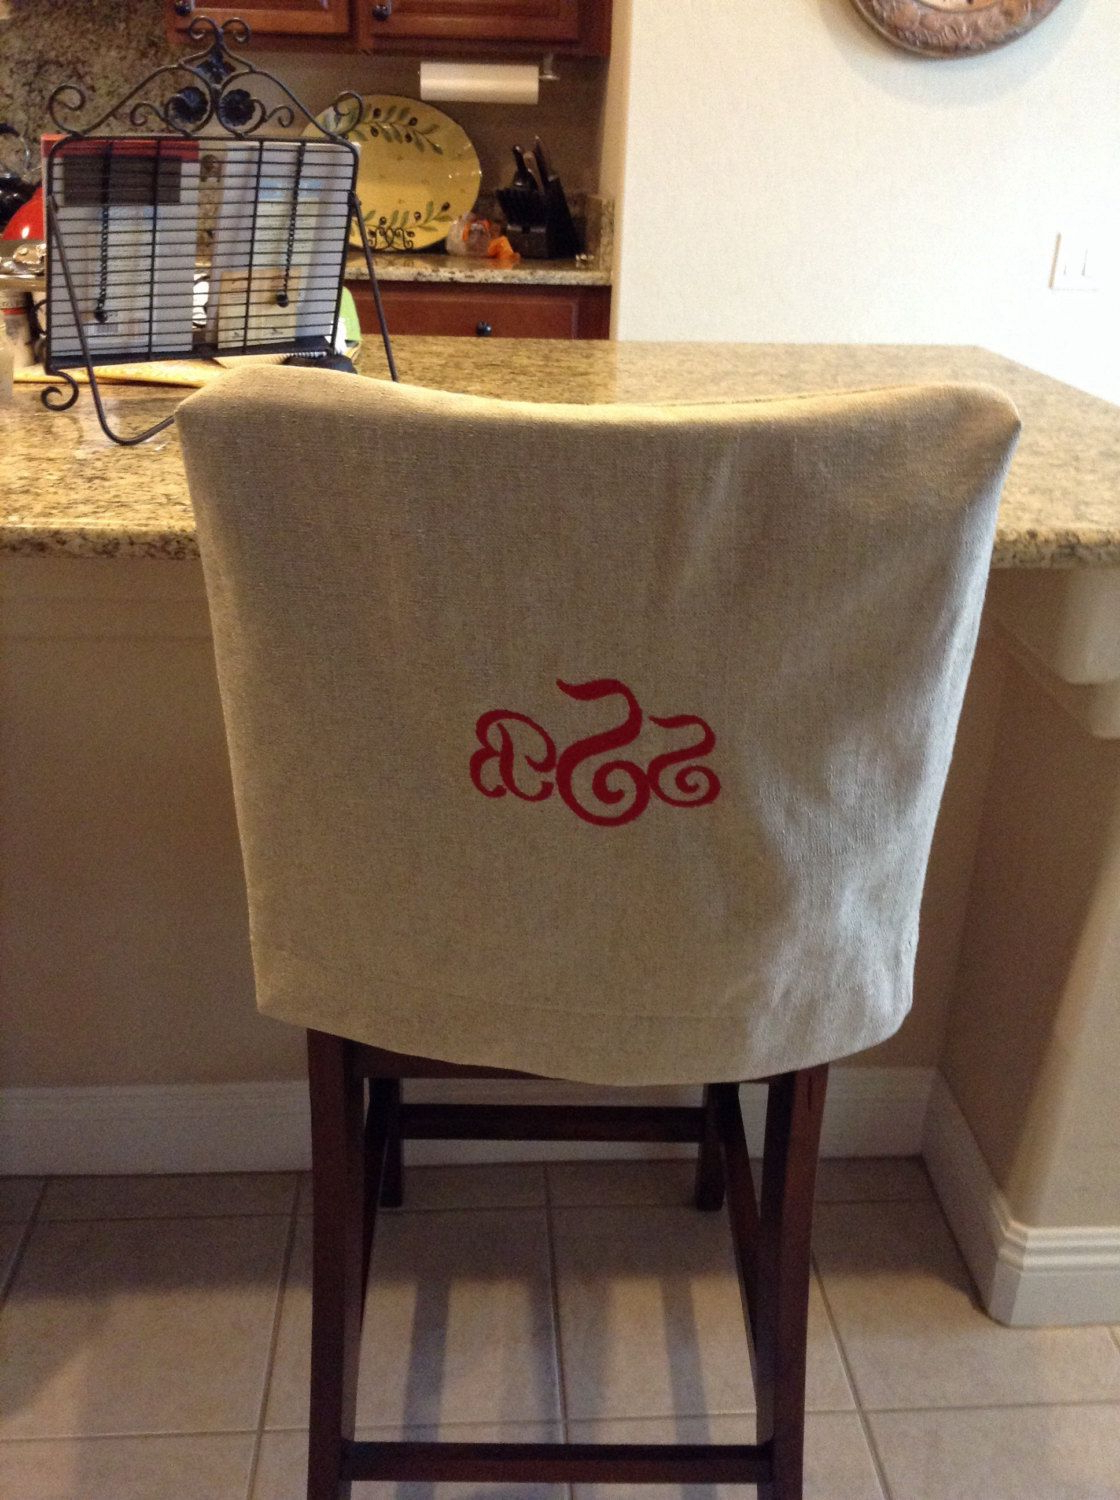 Most Popular Covers For Sofas And Chairs Intended For Monogrammed Chair Back Cover (View 10 of 20)